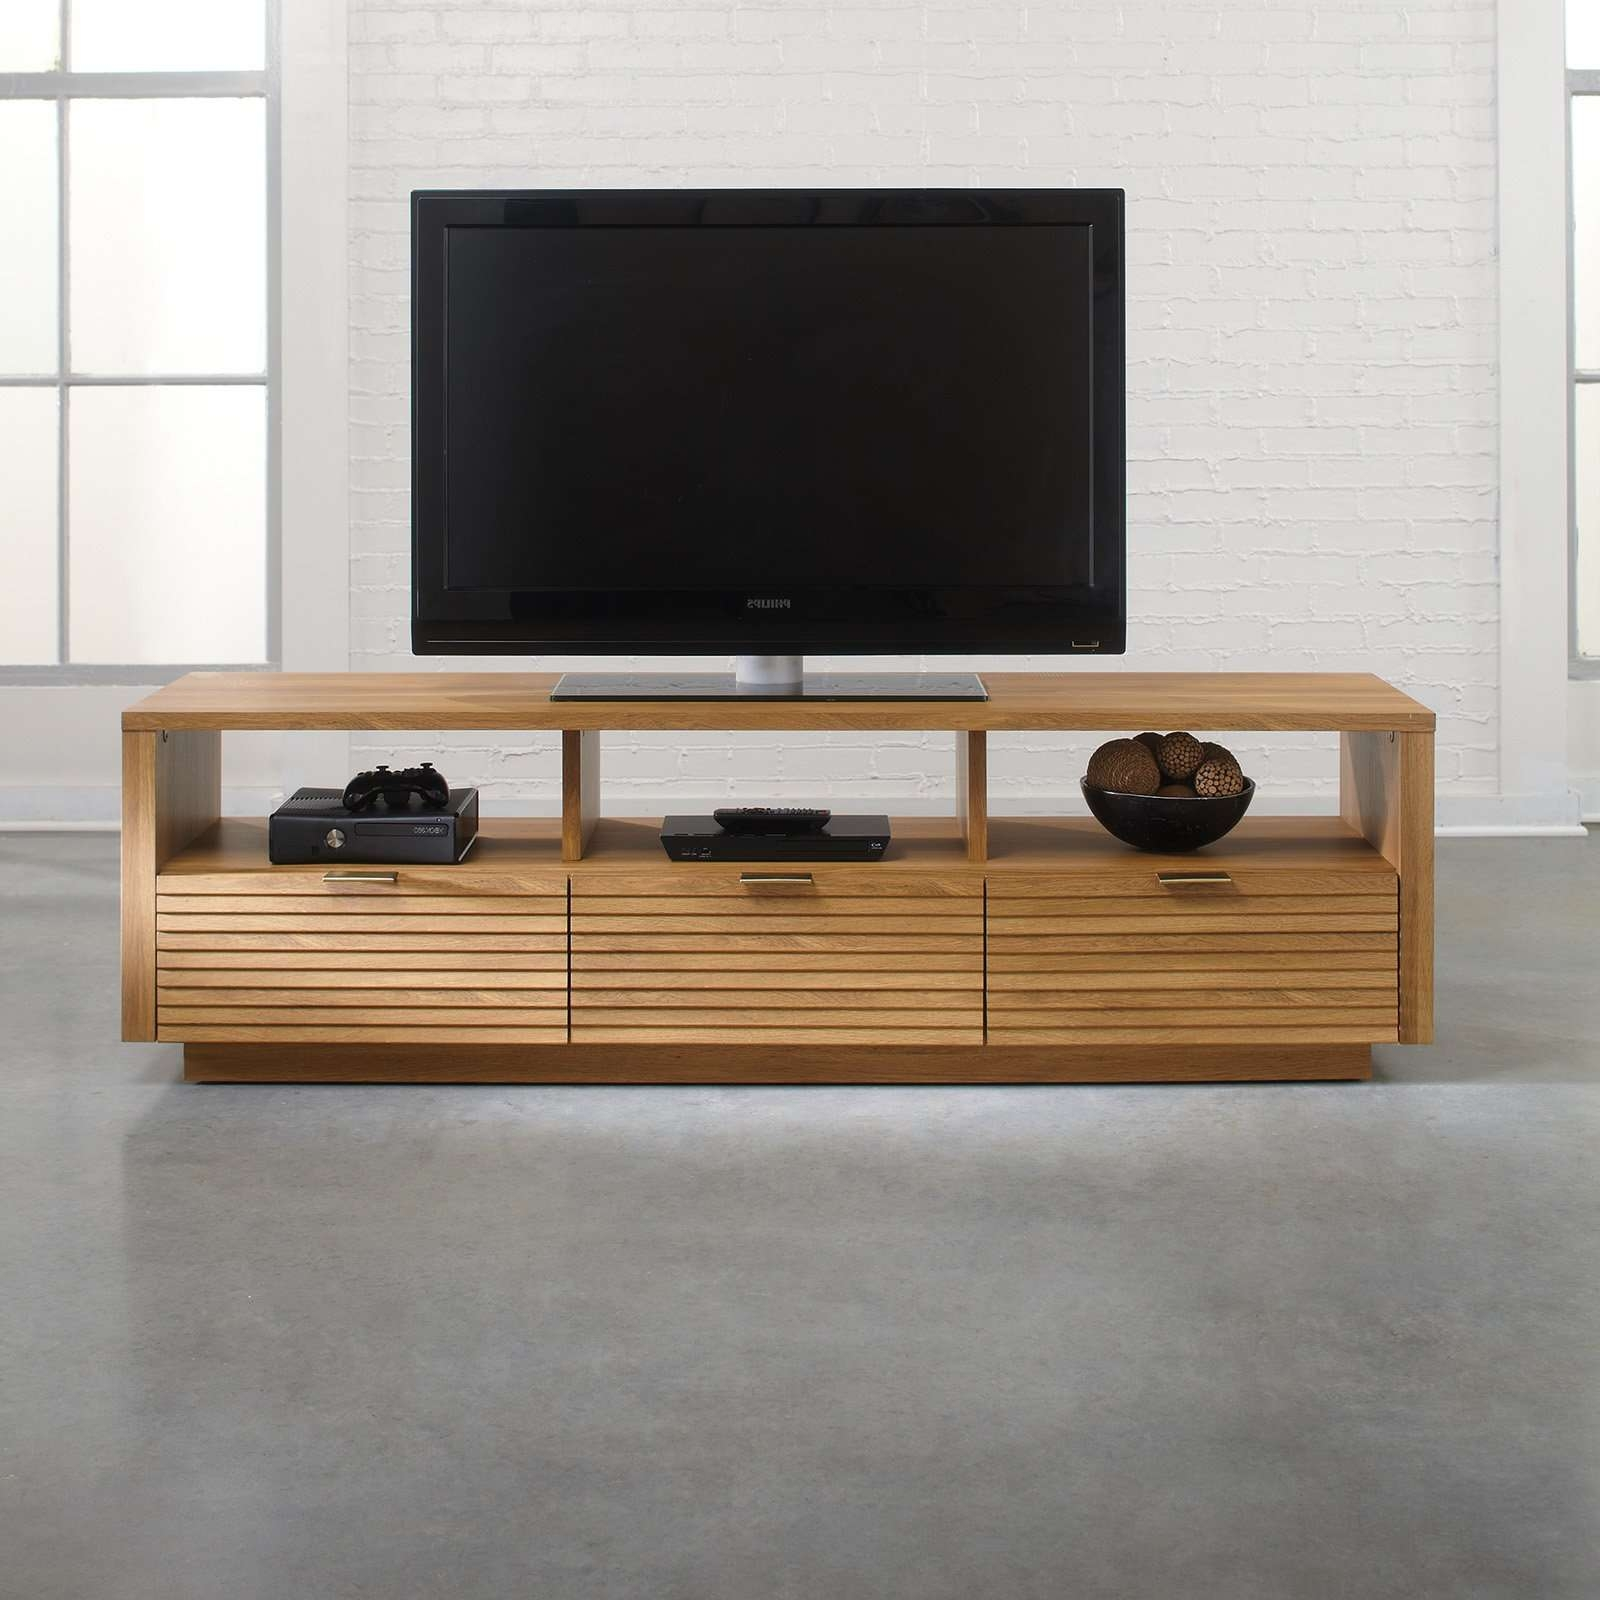 Belham Living Carter Mid Century Modern Tv Stand | Hayneedle With Regard To Modern Low Tv Stands (View 2 of 20)